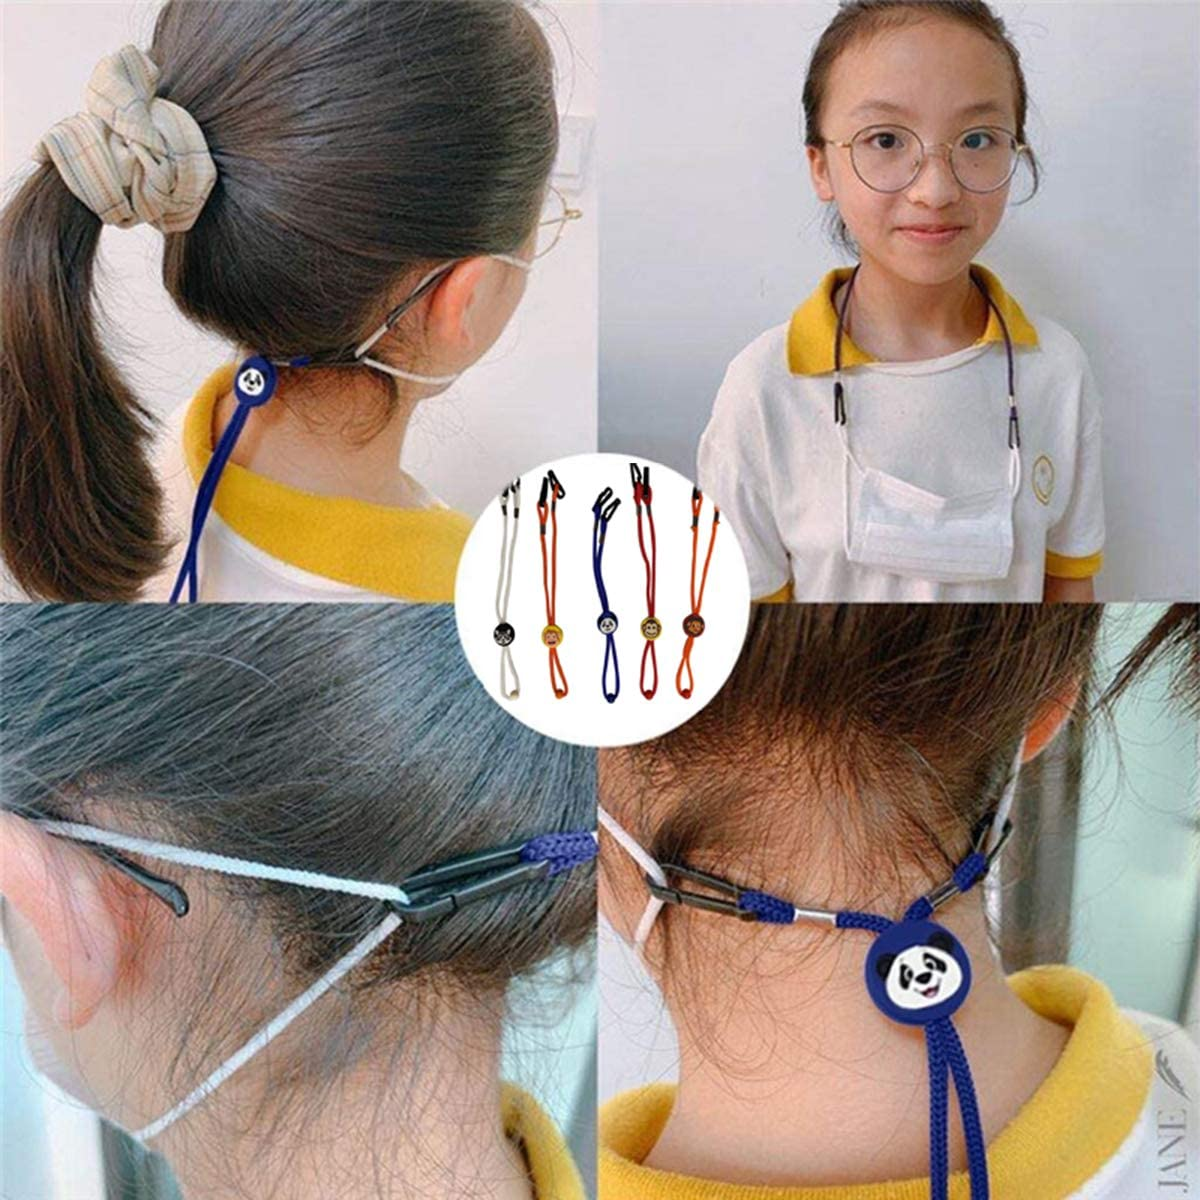 Amstt Mask Lanyard for Adults, Comfortable fits Back of Head or Neck with Clips and Adjustable Stopper